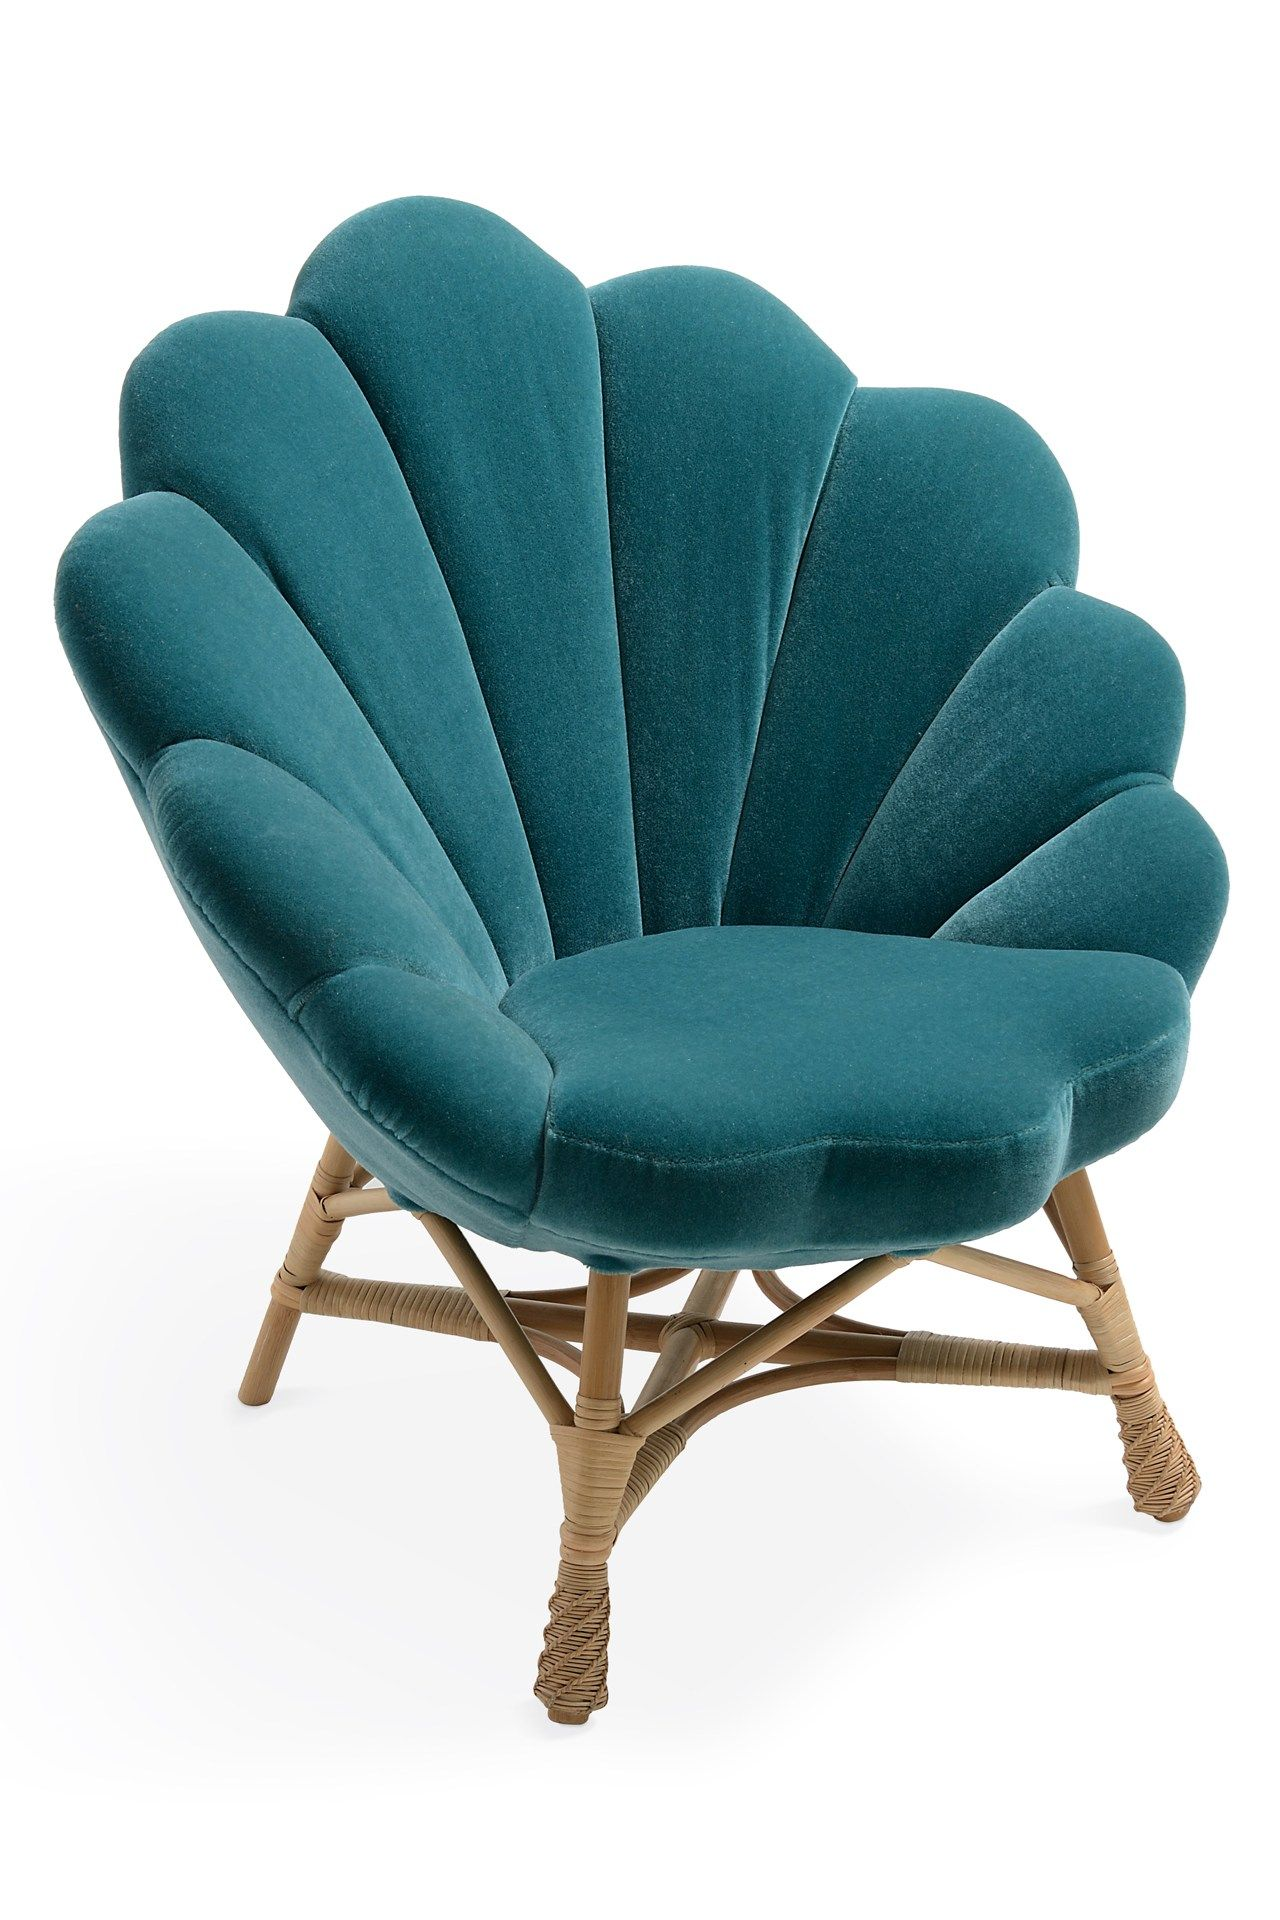 Best How To Give Your Home The Gucci Look Accent Chairs 640 x 480